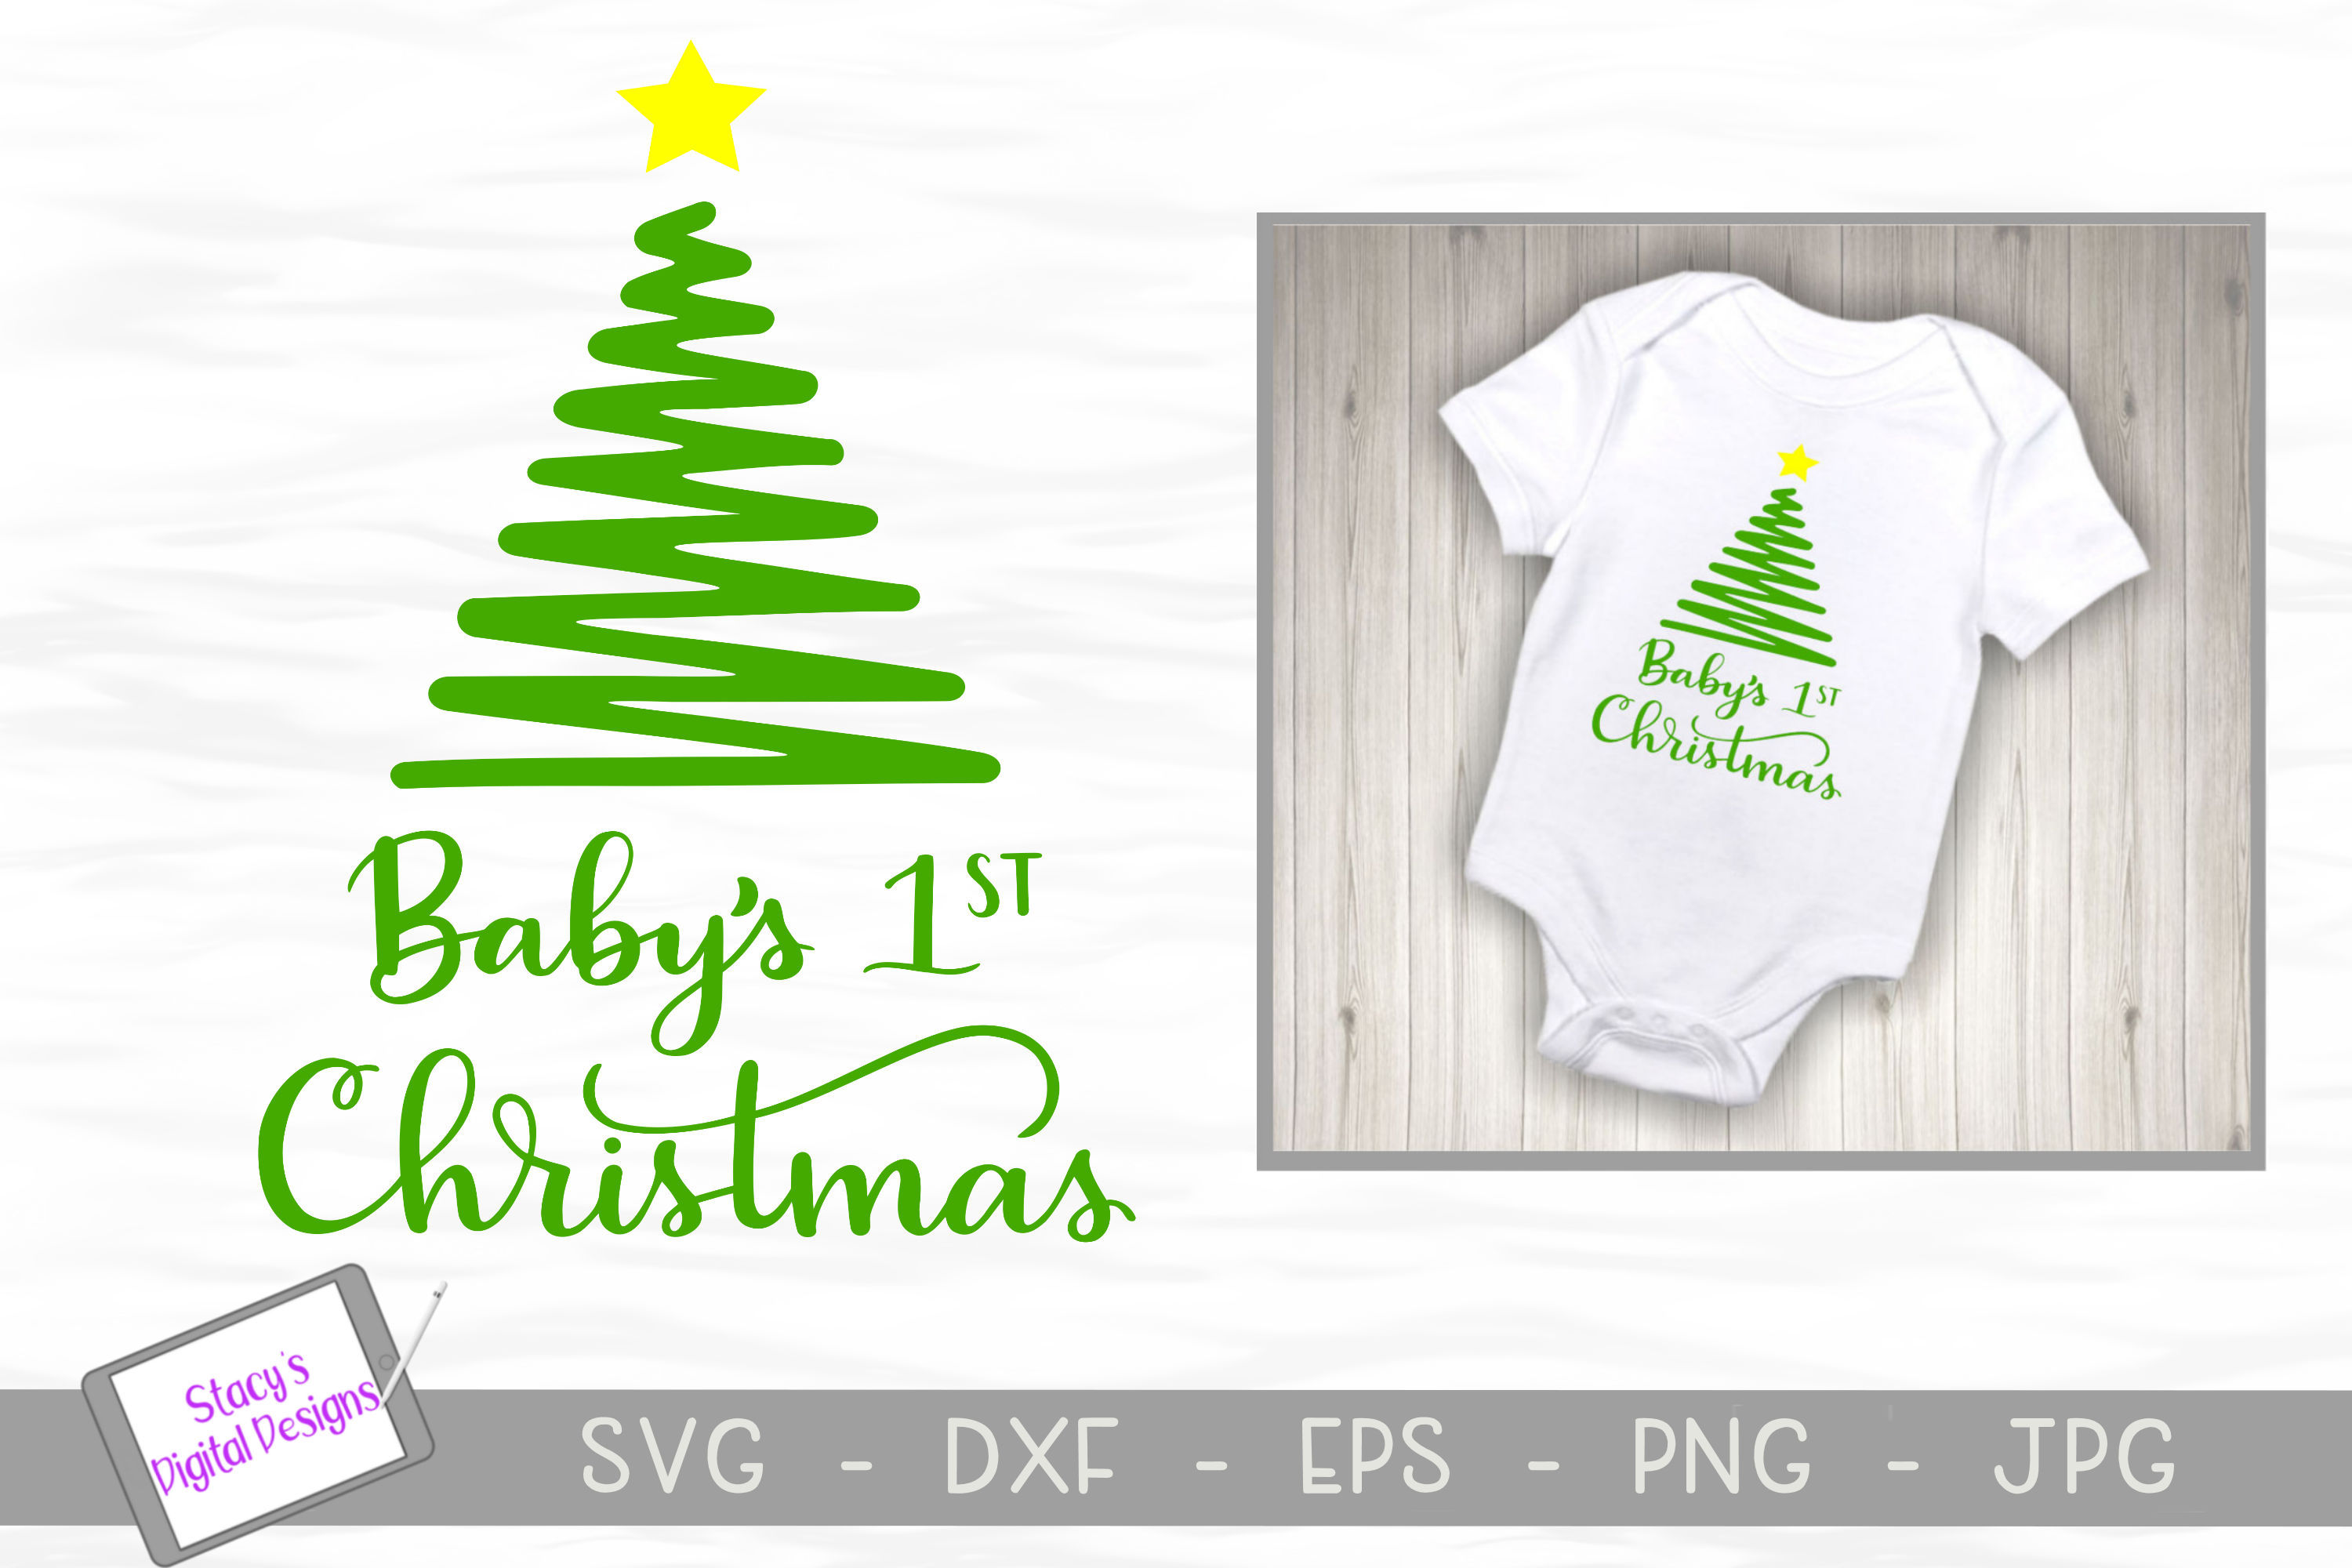 Christmas SVG - Baby's 1st Christmas SVG design with tree example image 1